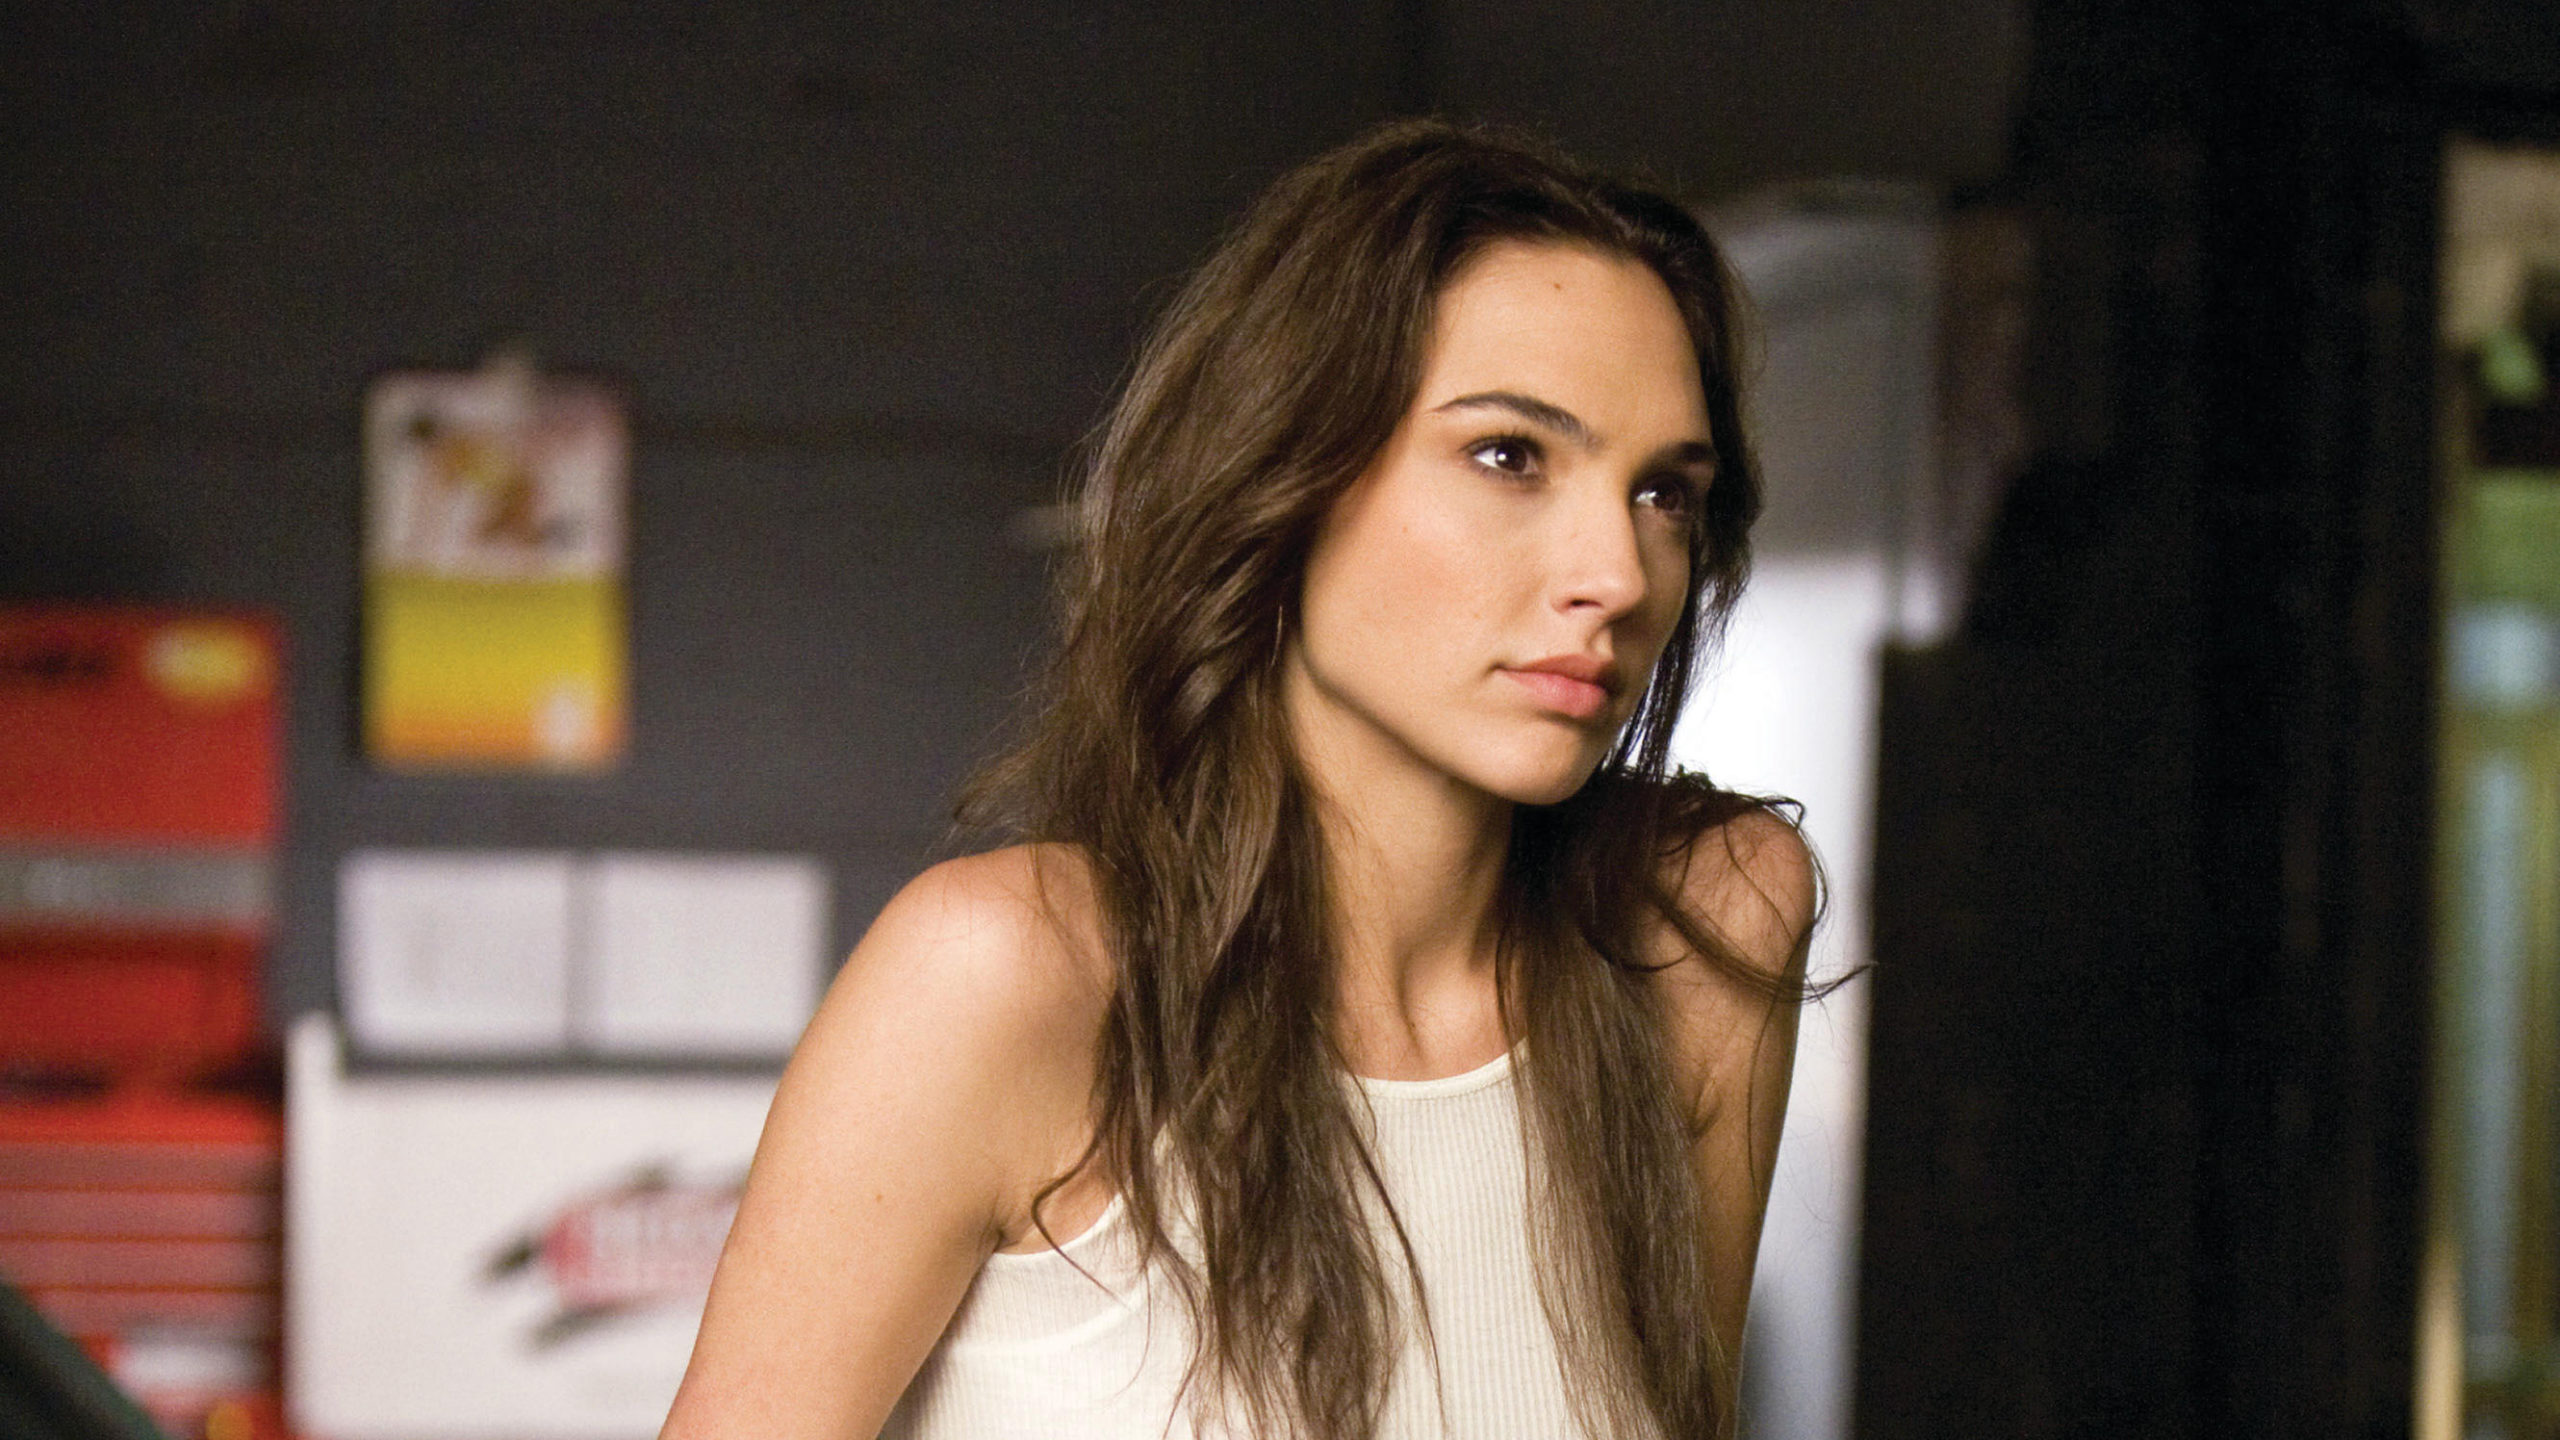 784884 byte size of Gal Gadot IN The Fast And The Furious D8.jpg